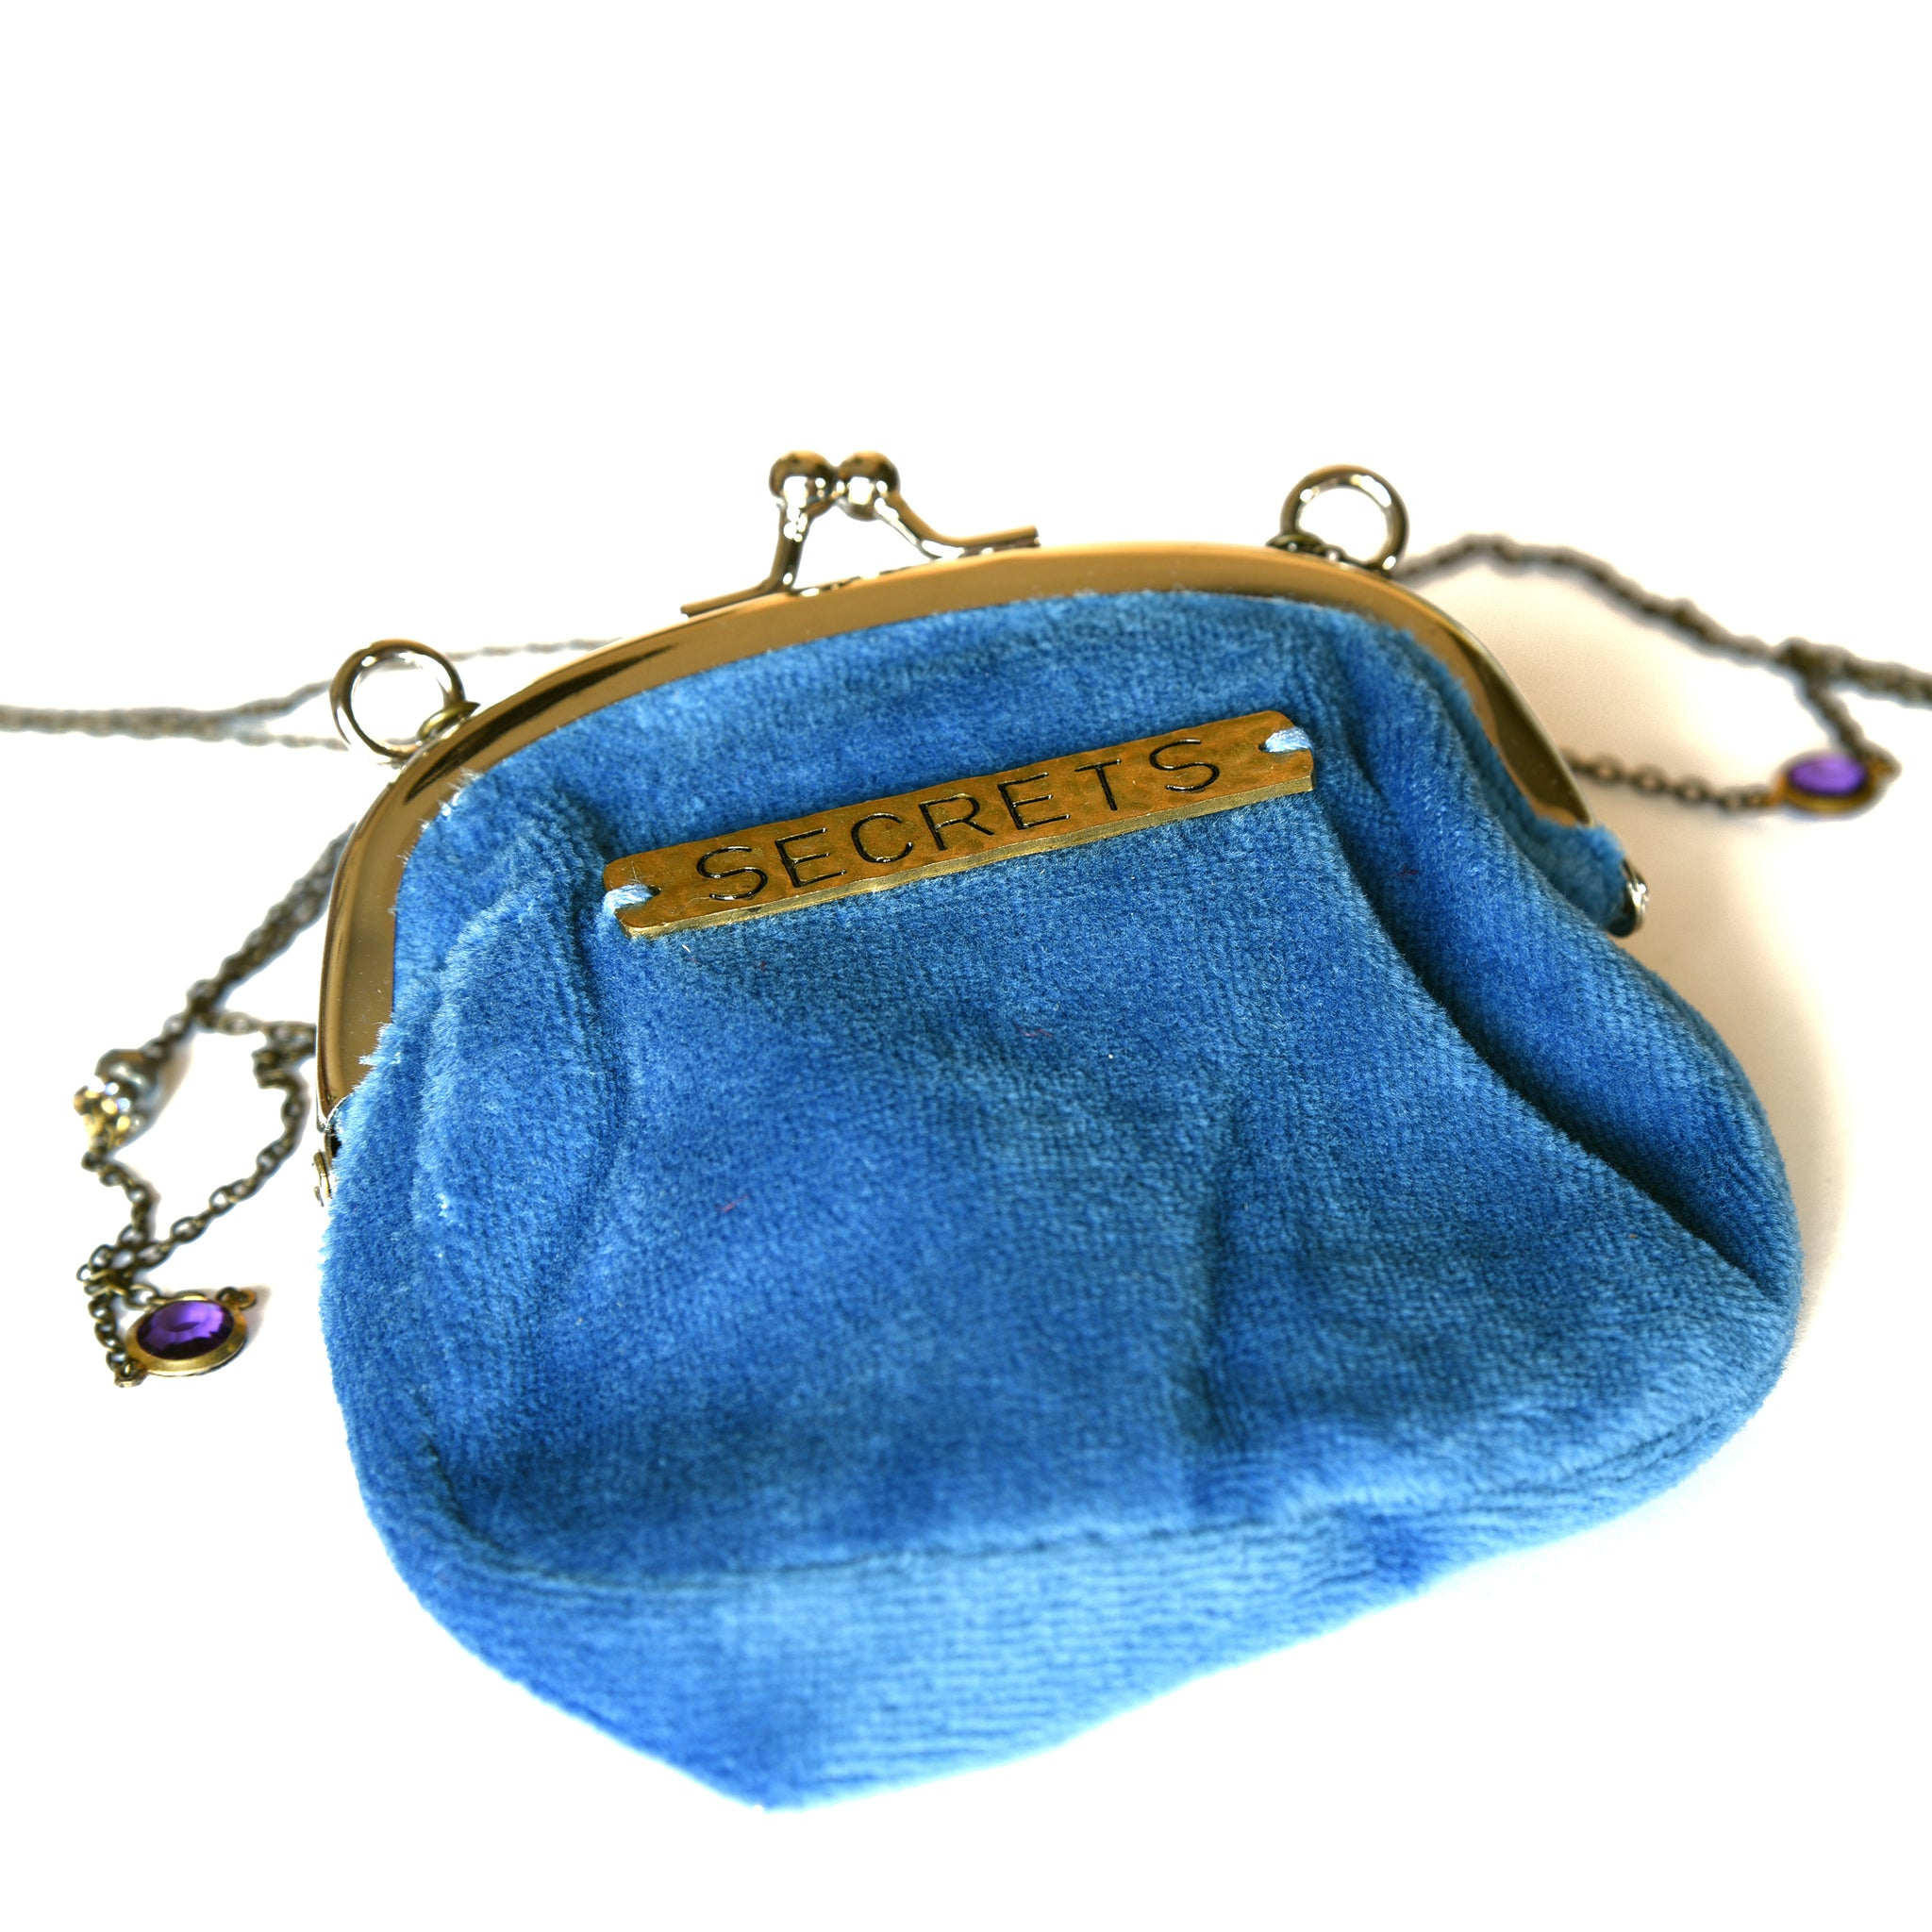 Secrets Blue Coin Purse with Jeweled Chain Strap